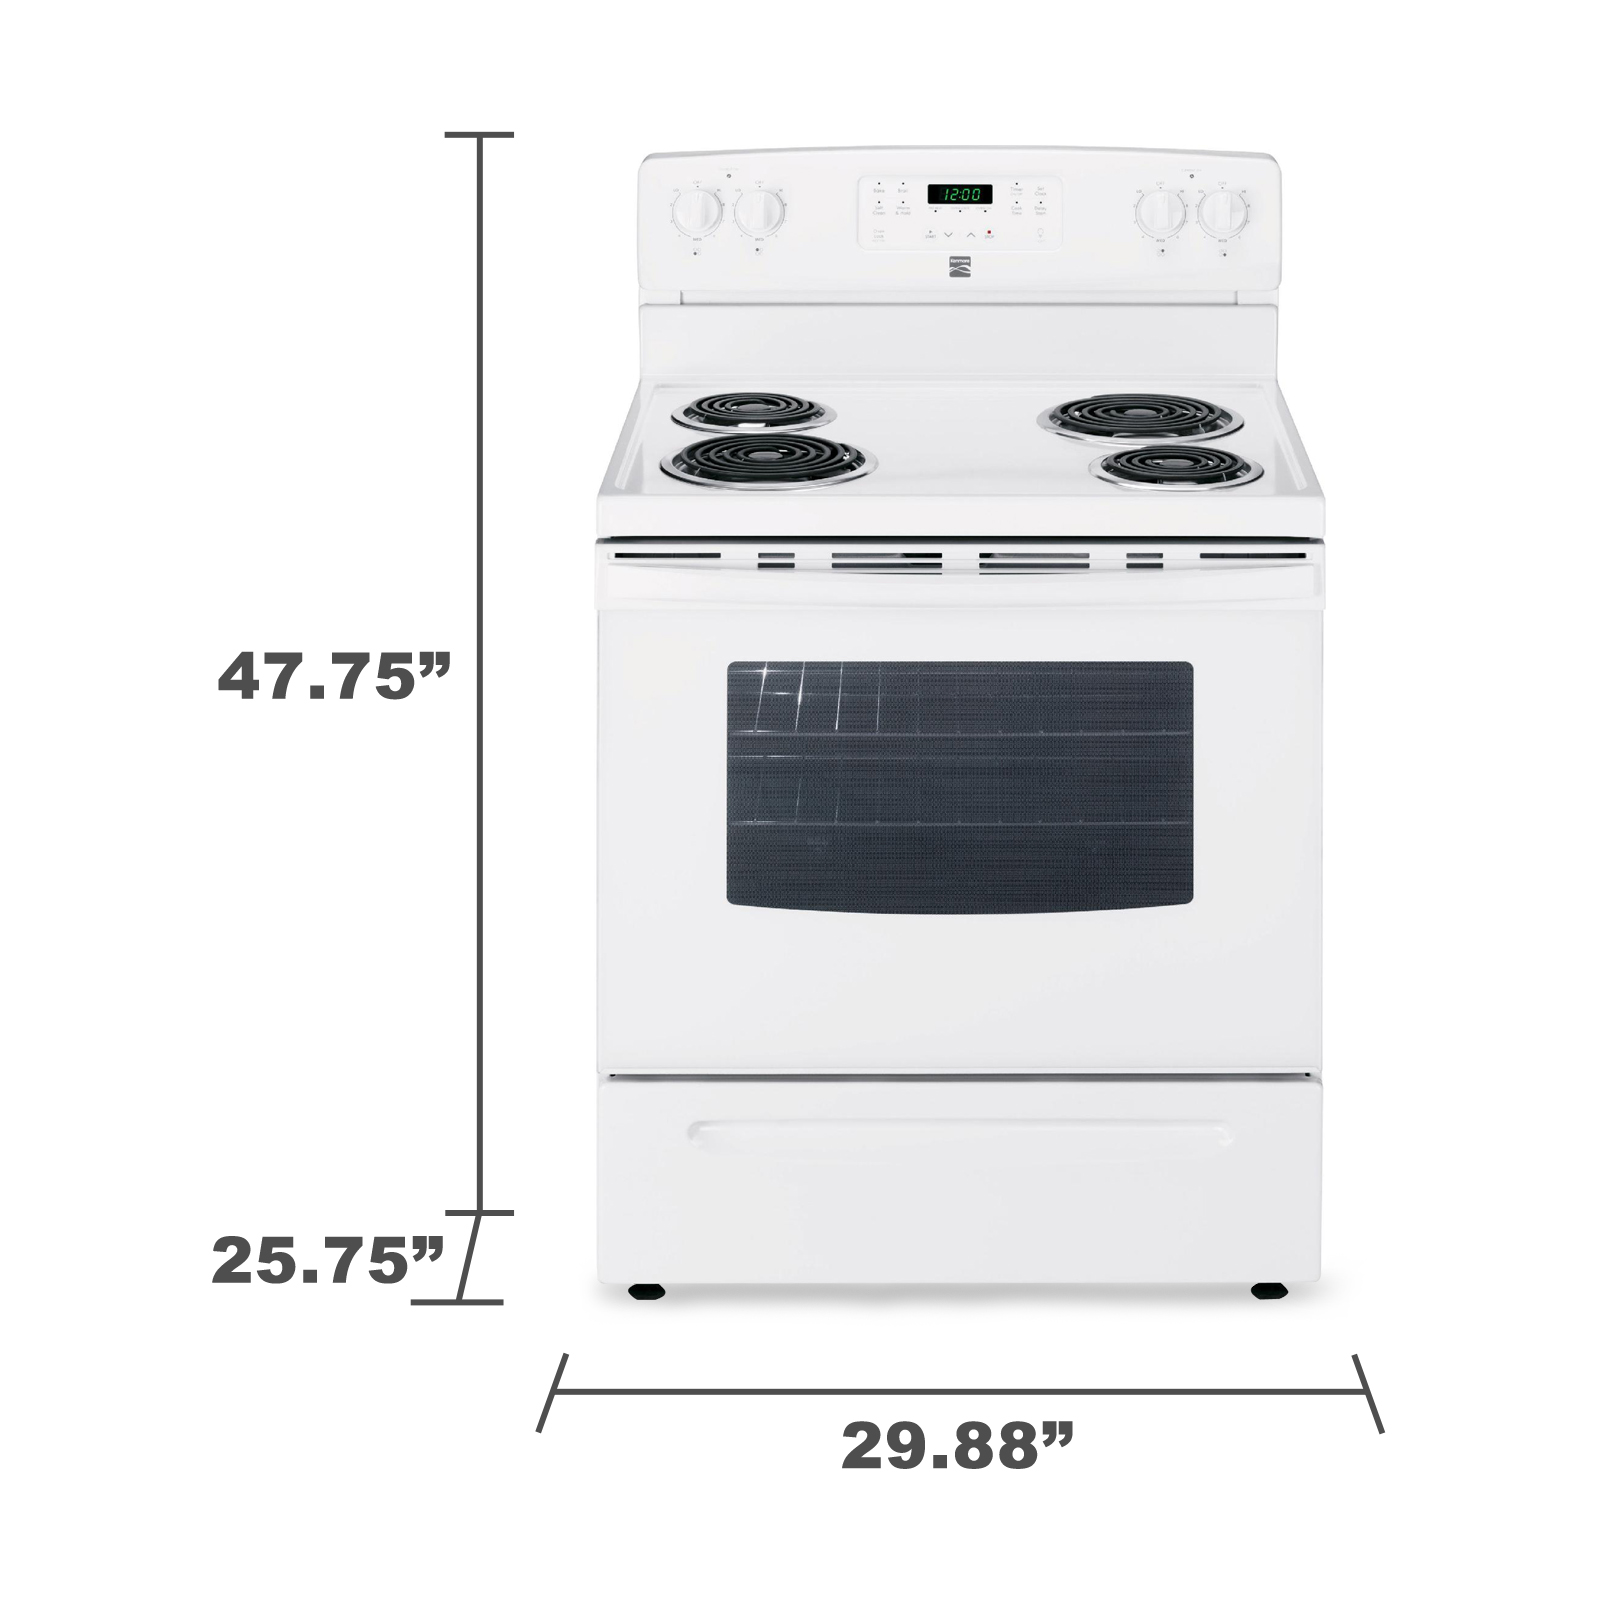 Kenmore 94142 5.3 cu. ft. Electric Range w/ Self-Cleaning Oven - White